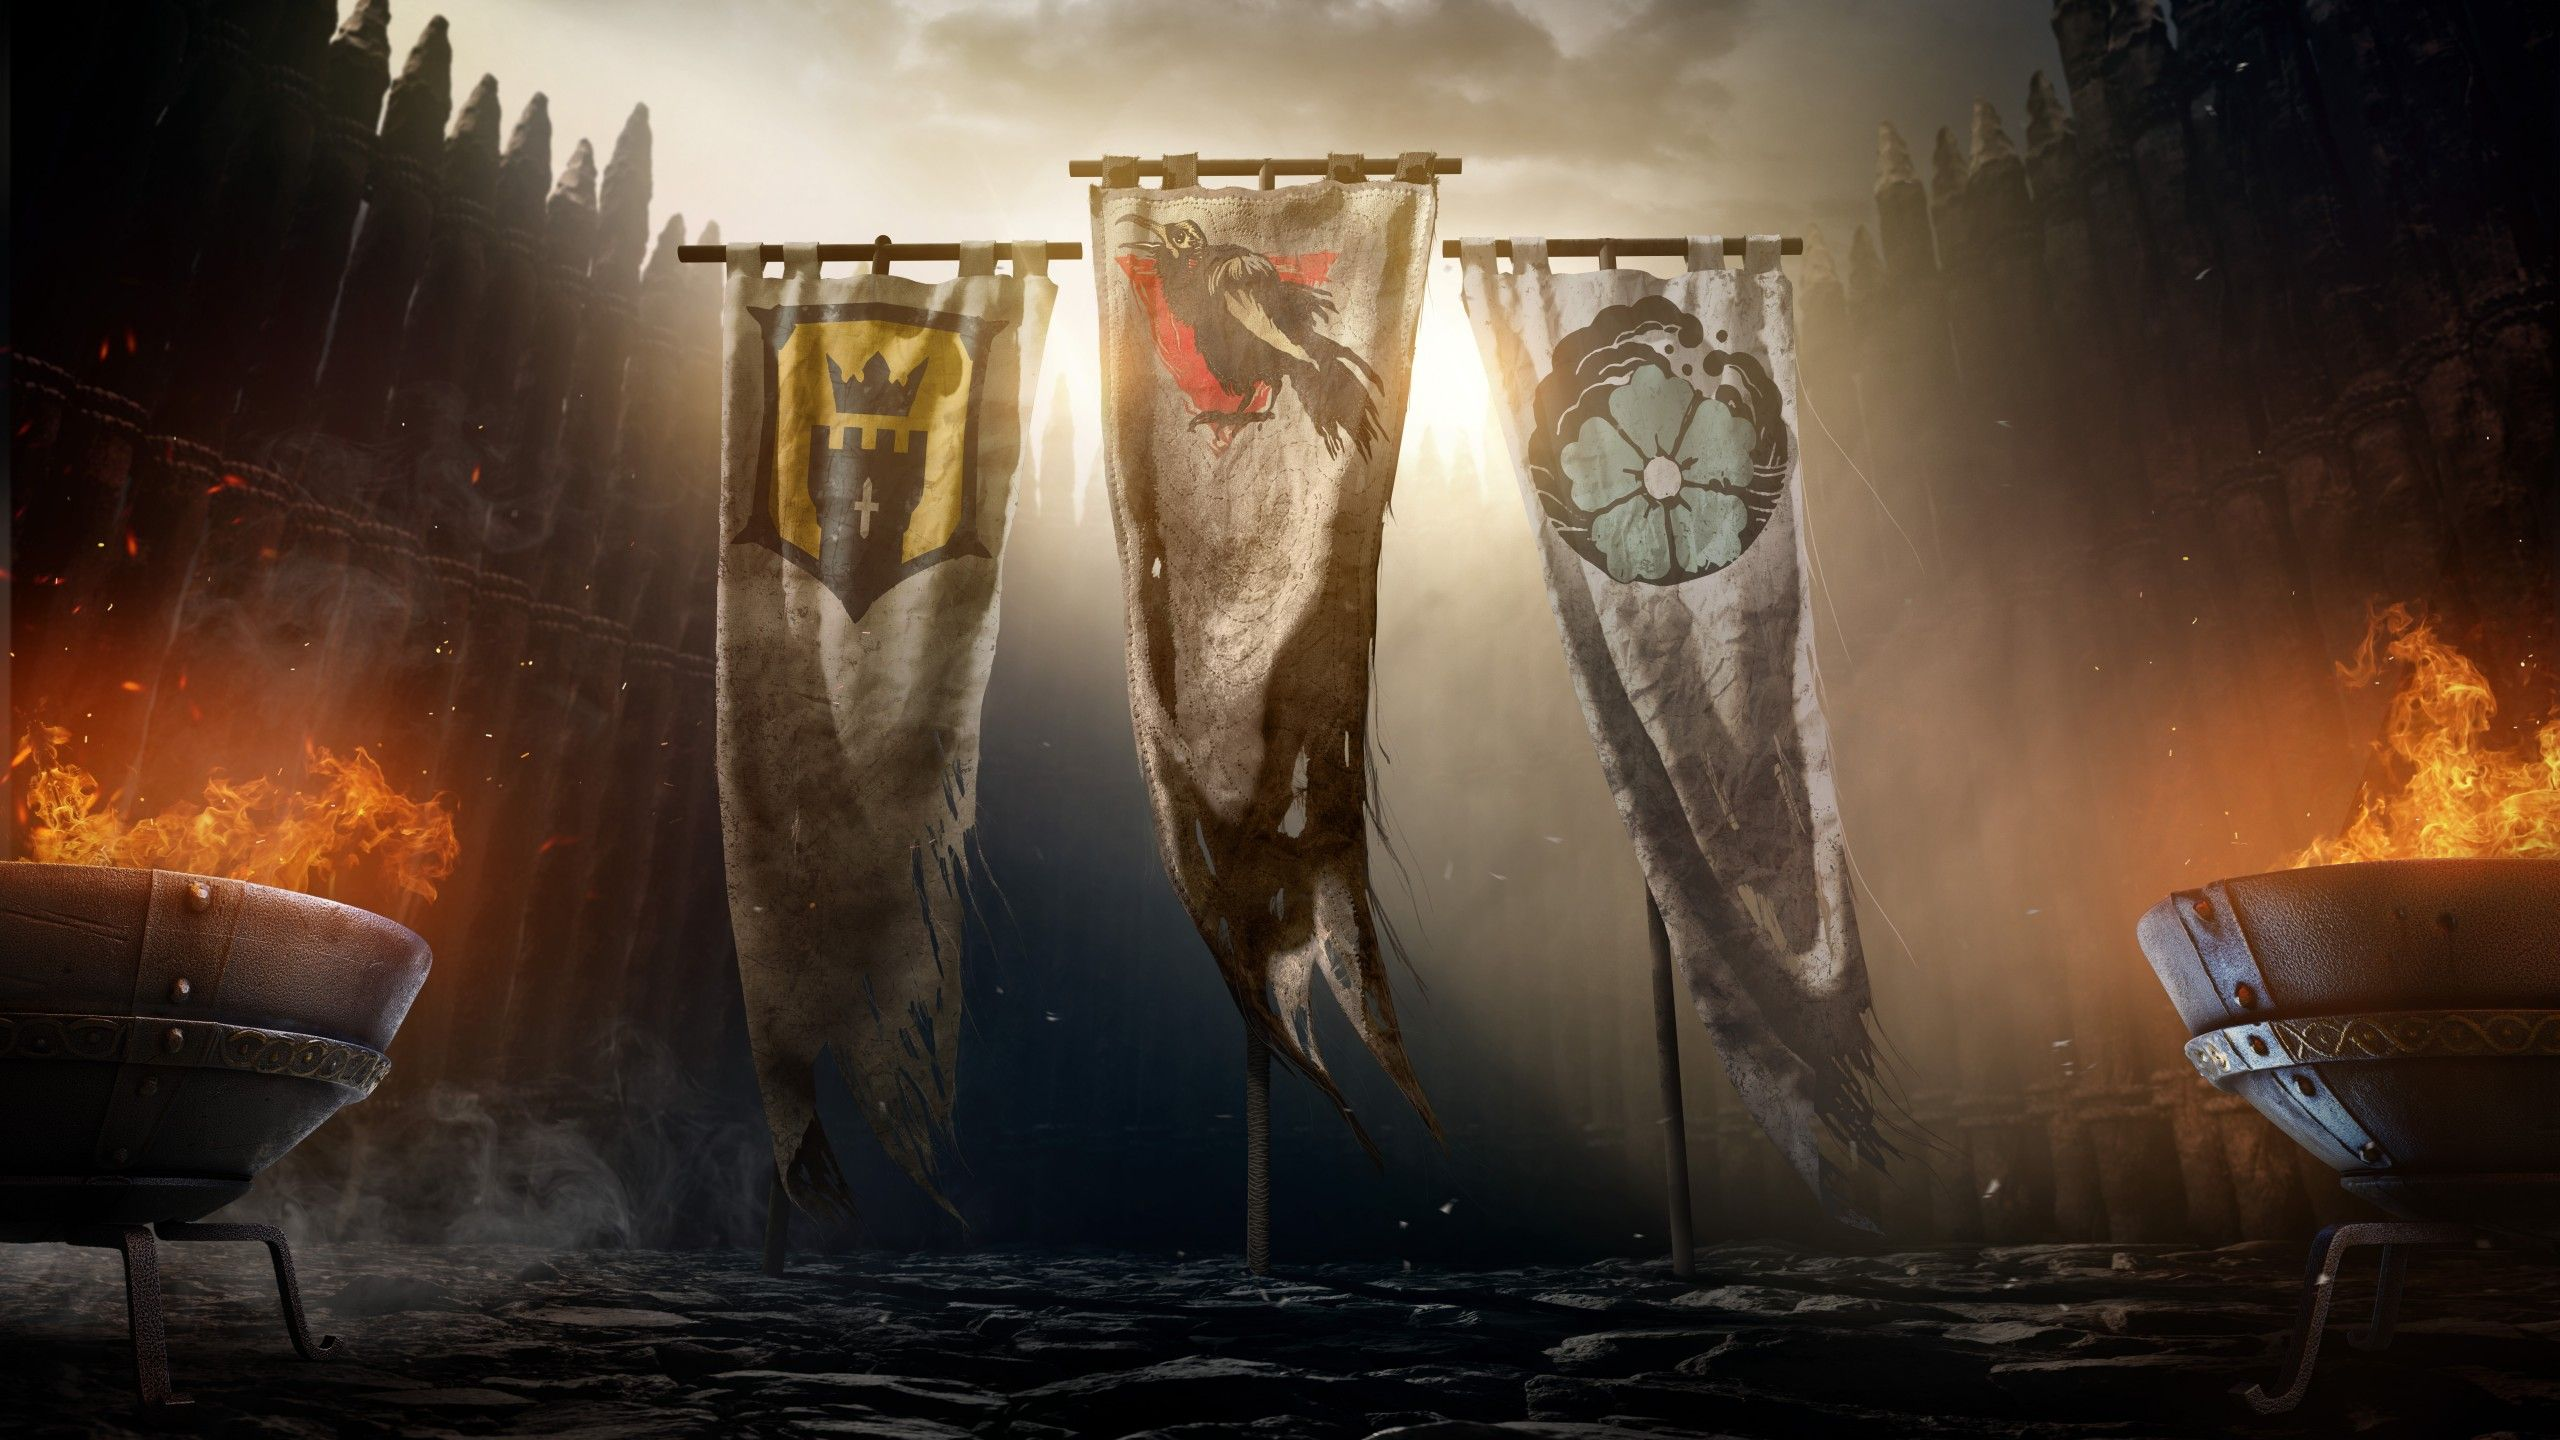 For Honor Apollyon Wallpaper For Mac 4k Wallpapers For Pc Poster Prints Abstract Poster